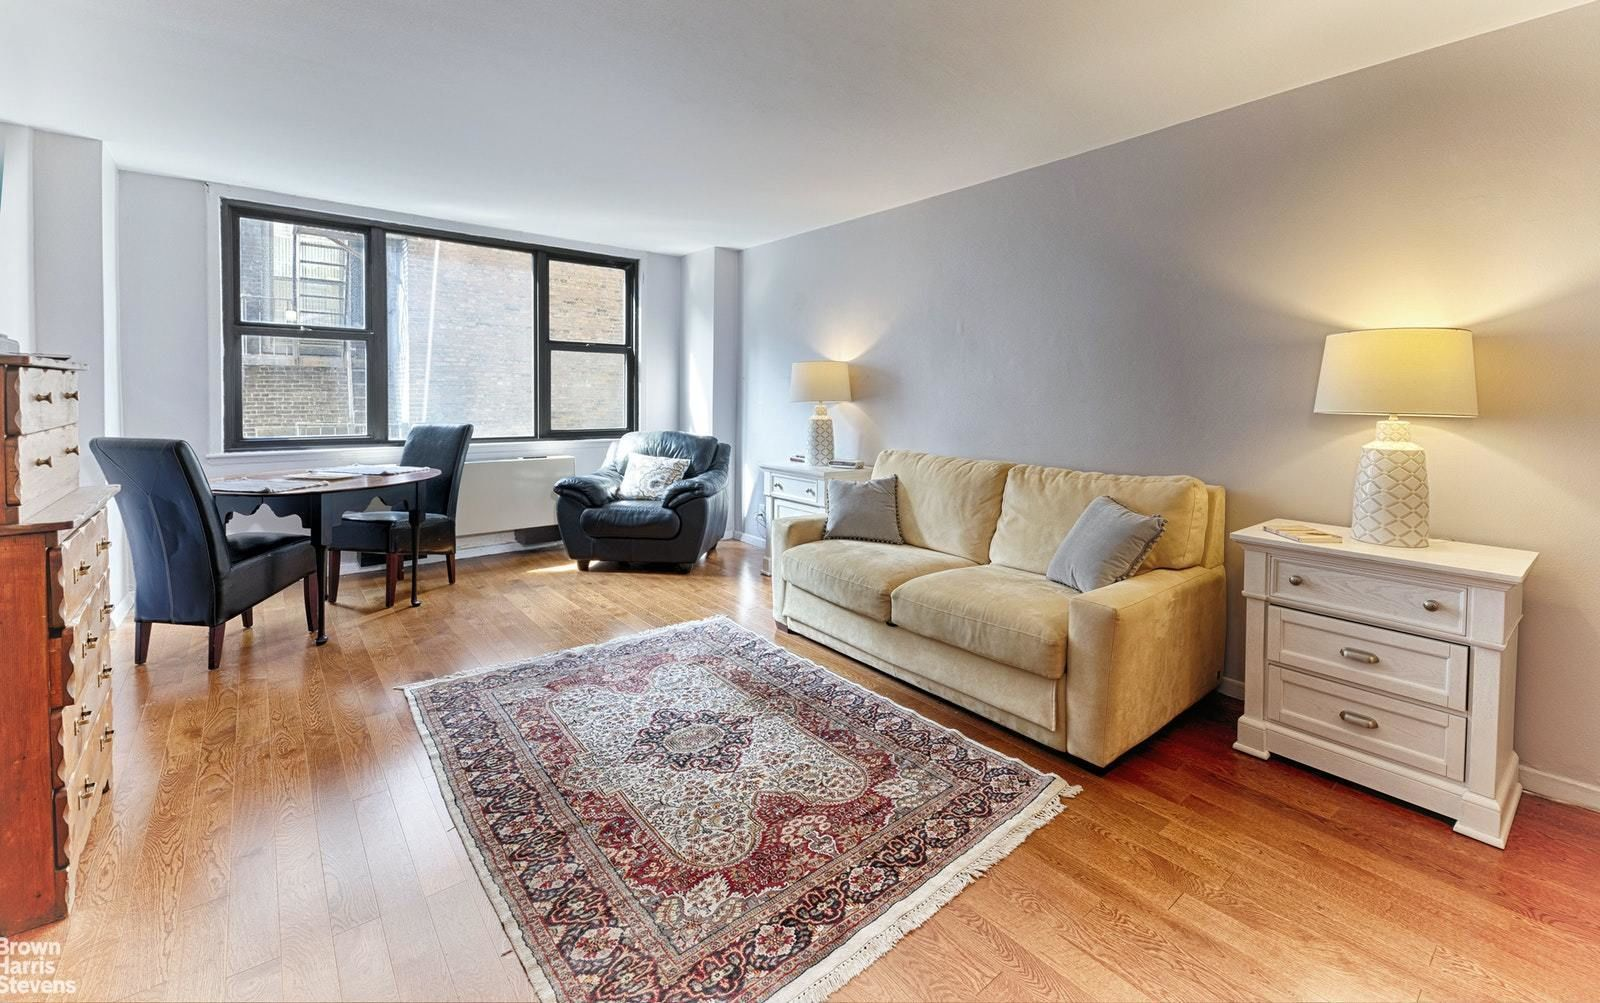 Apartment for sale at 130 East 18th Street, Apt 5J